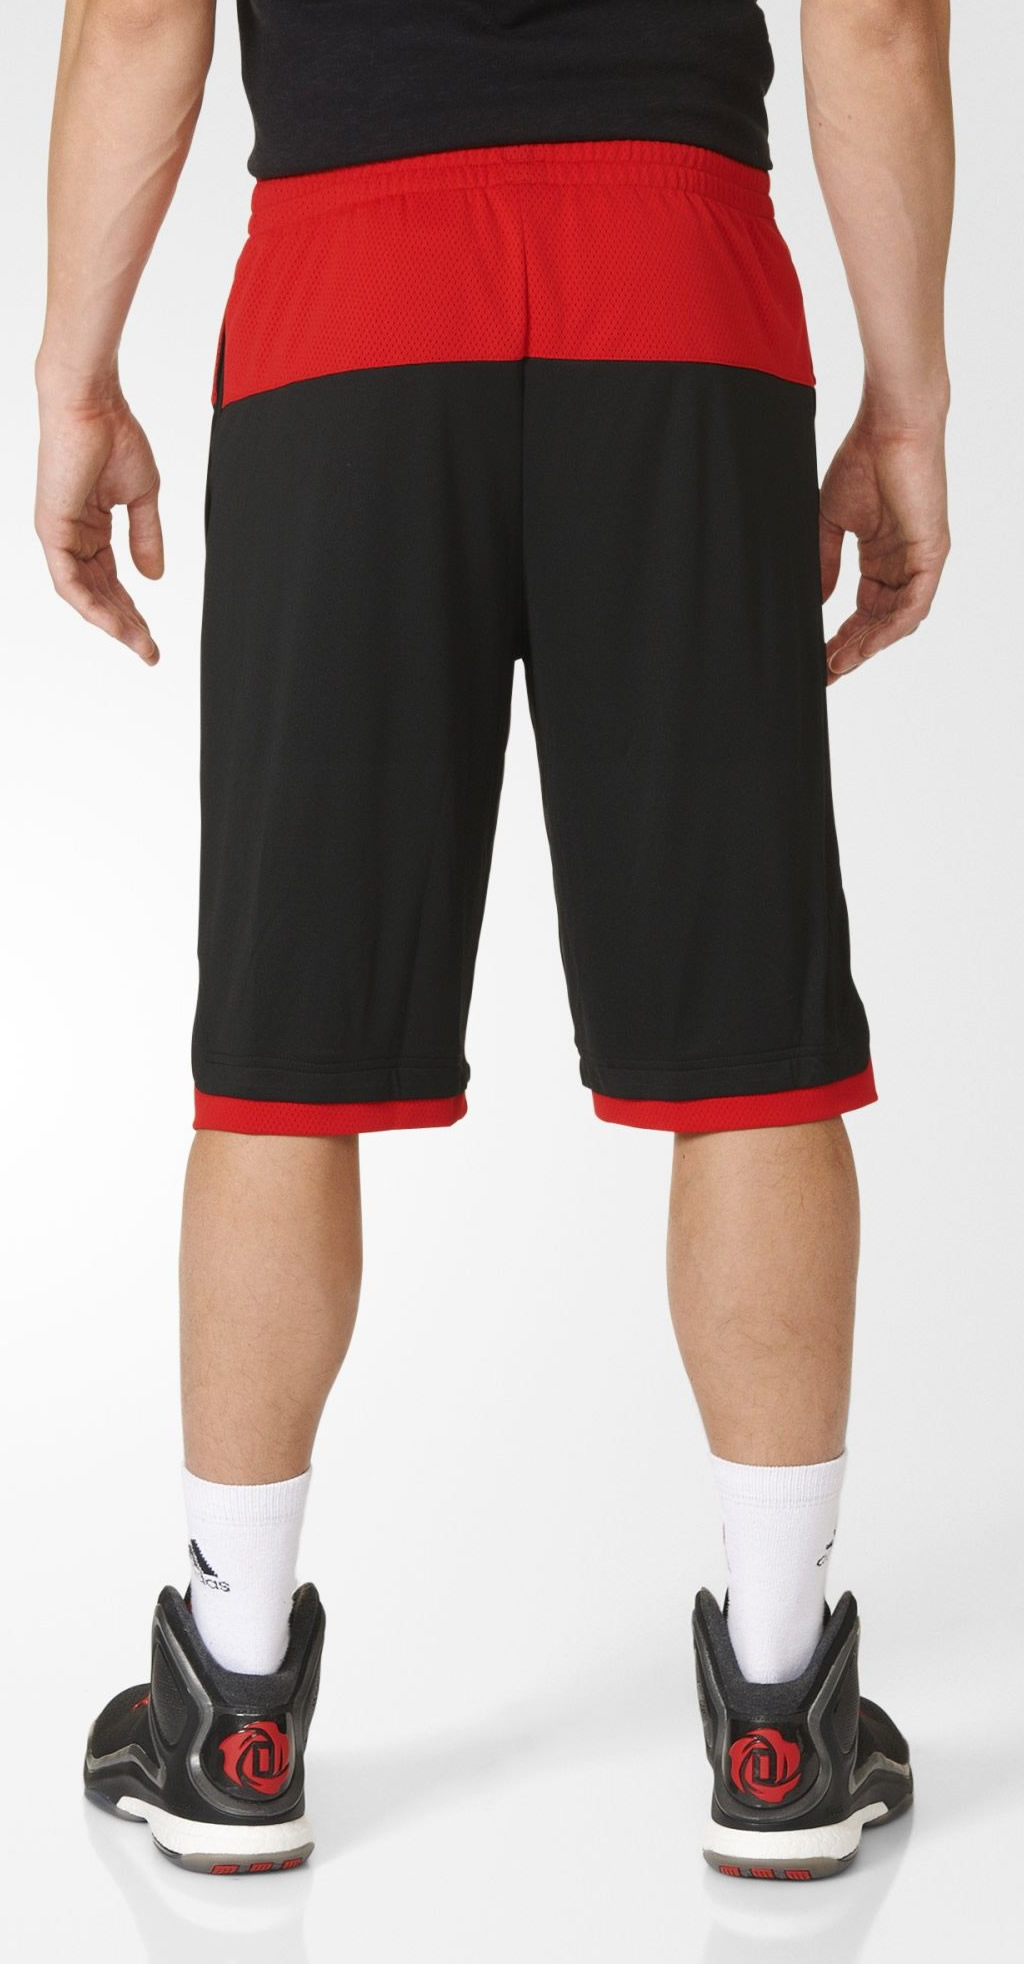 Red 365 Speed Basketball Shorts By Adidas, Back